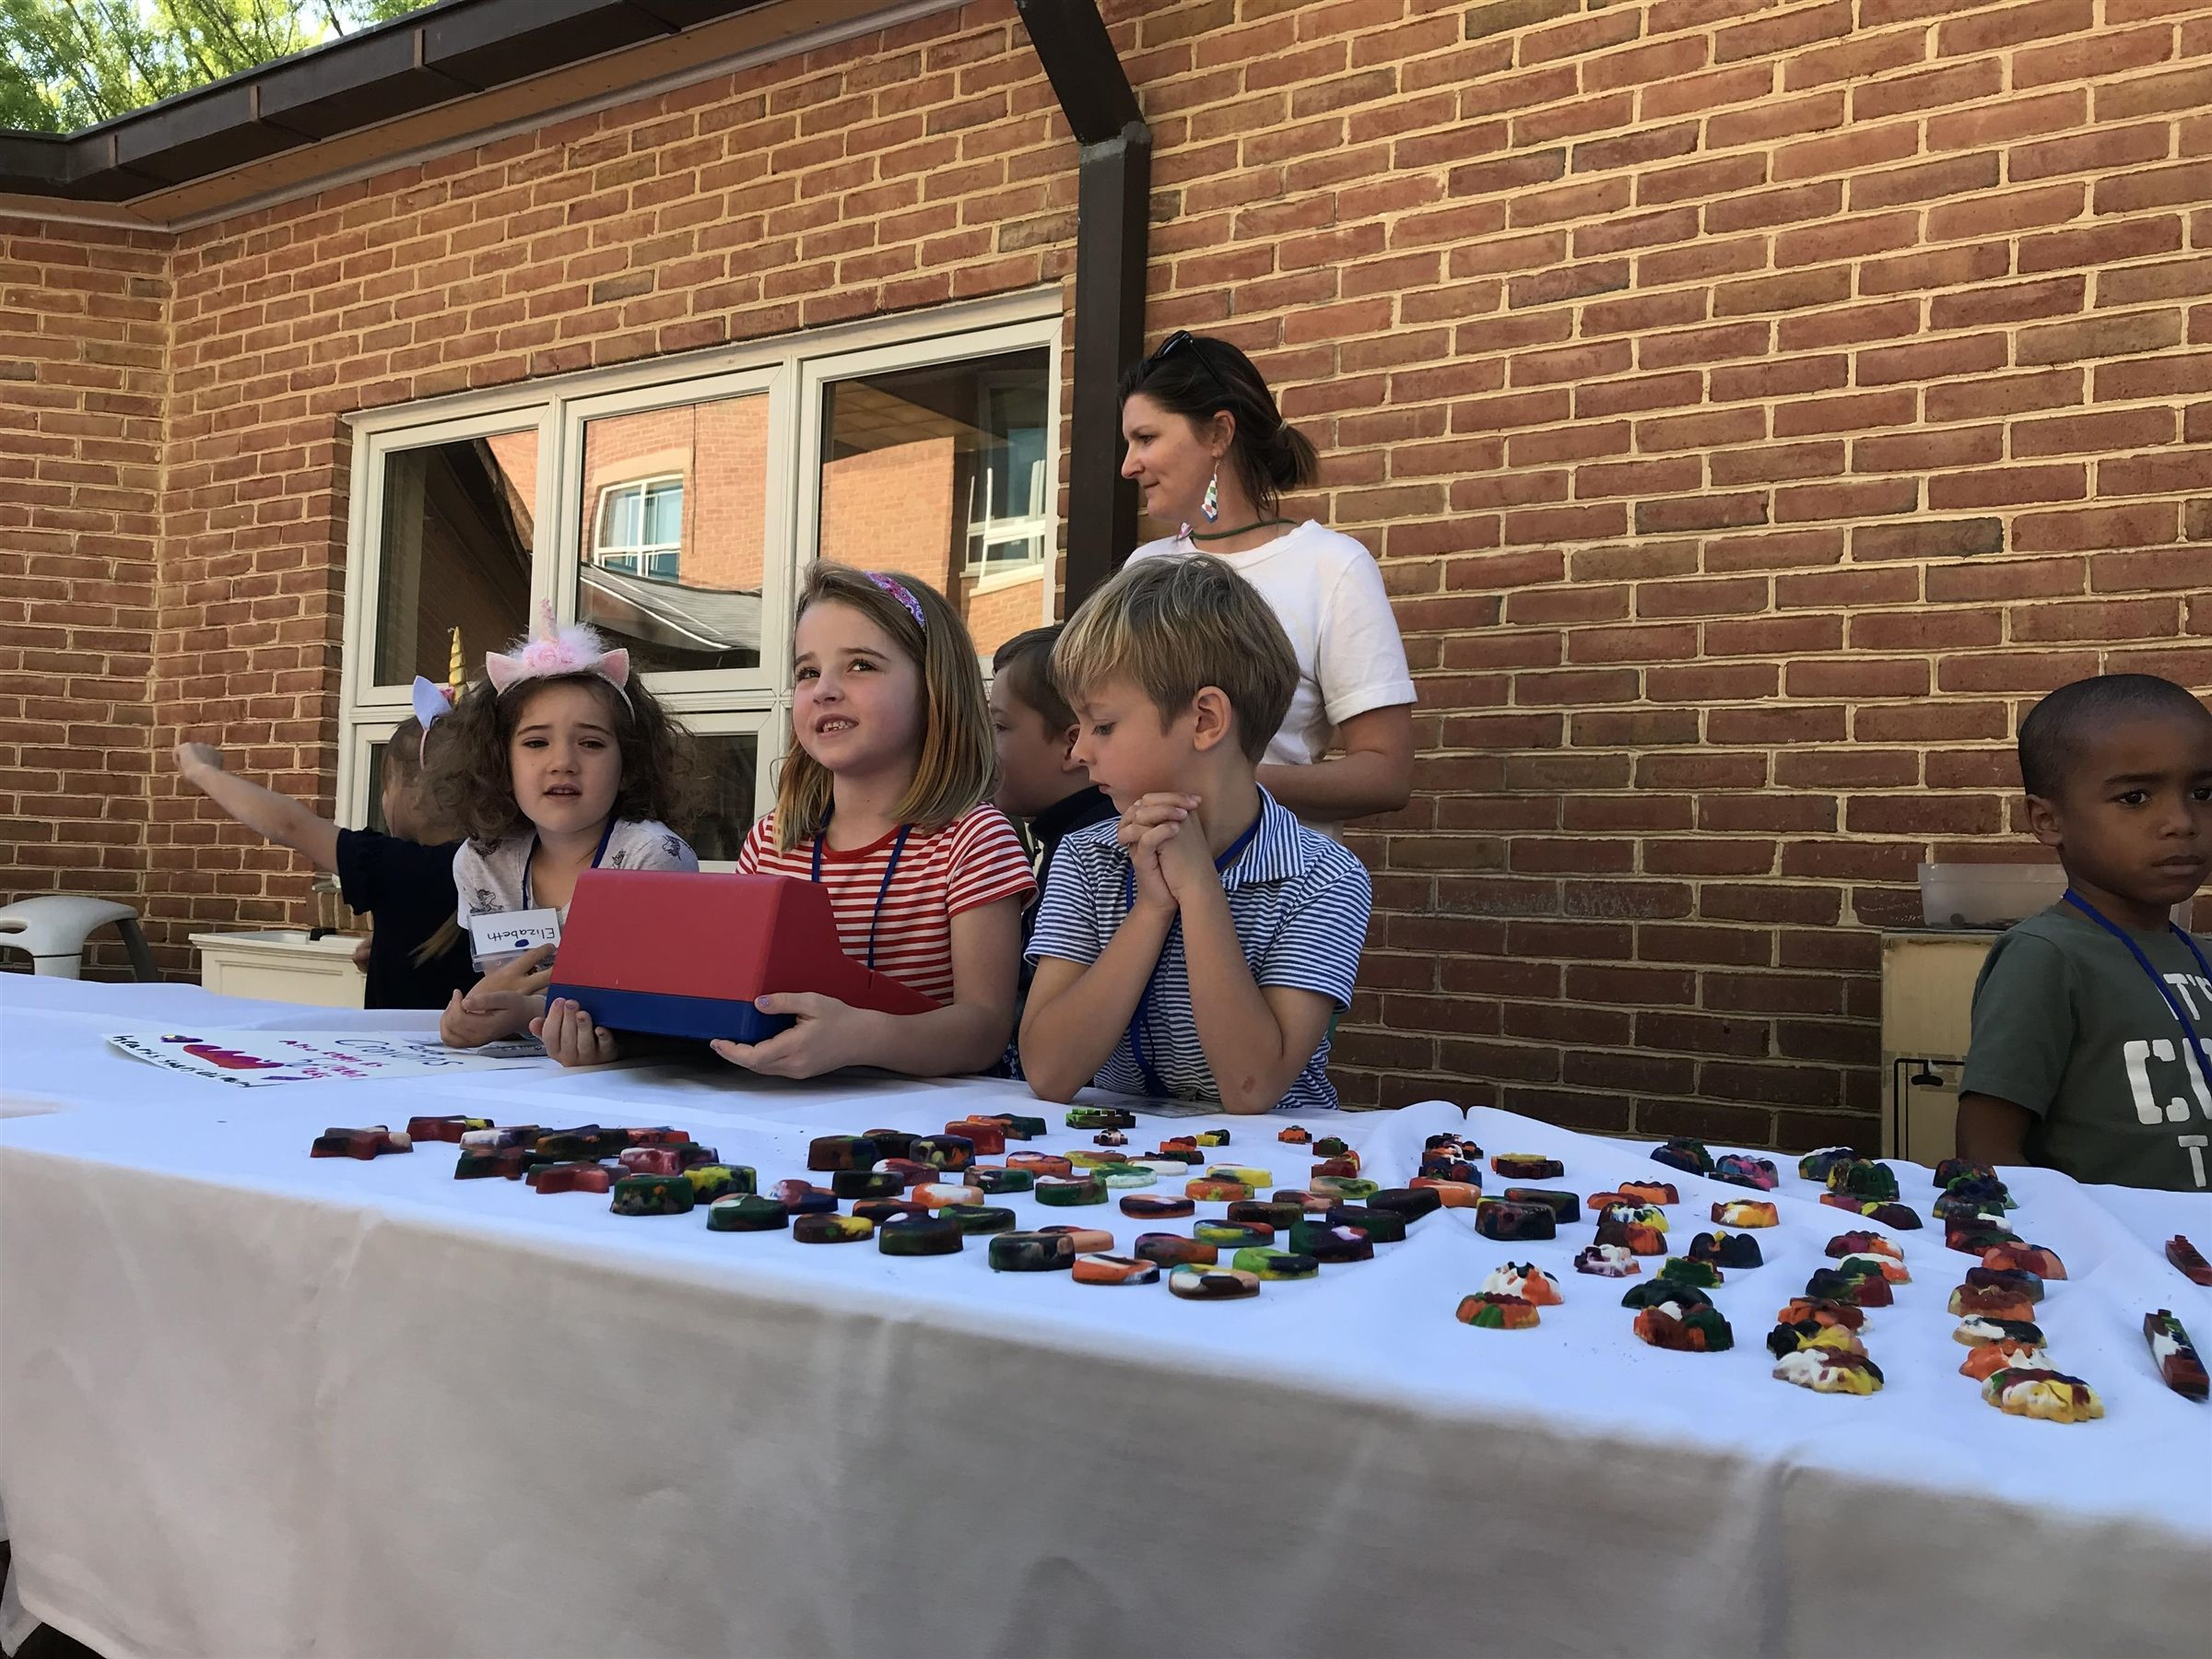 At the annual Kindergarten flea market, students take turns buying and selling items they have crafted, such as wool bracelets, shaped crayons, bird feeders, and more.